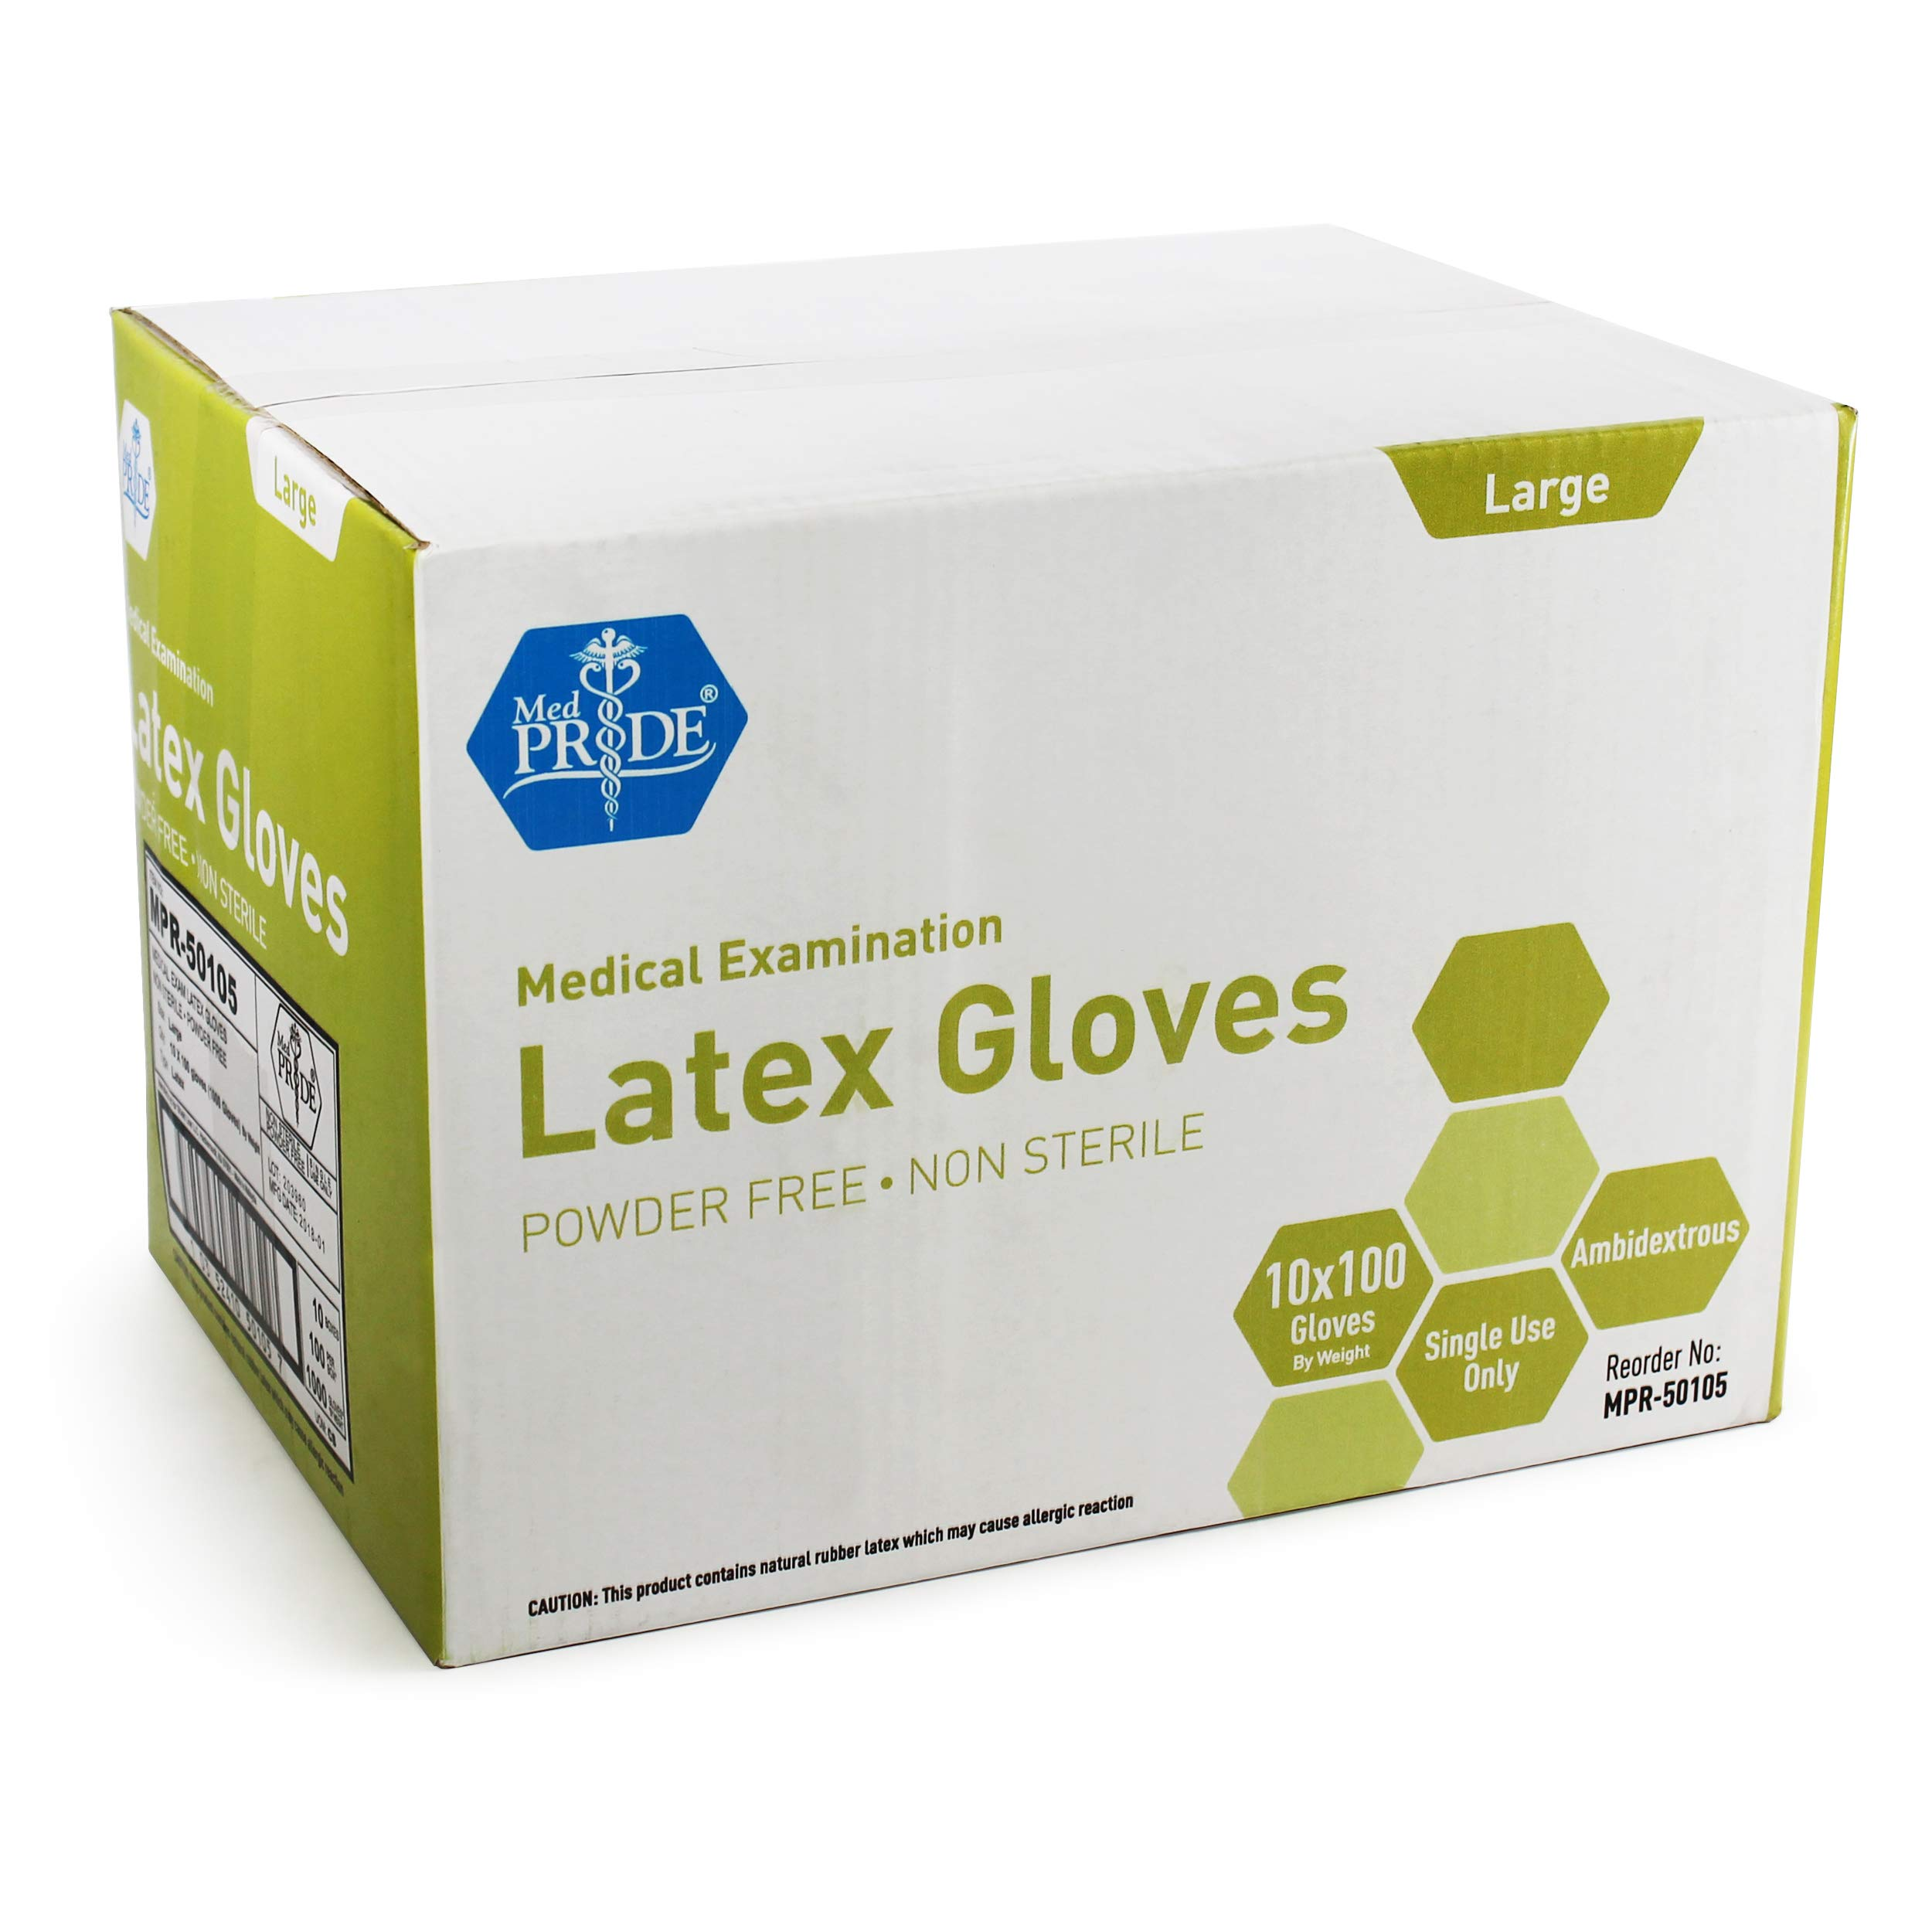 Medpride Medical Exam Latex Gloves| 5 mil Thick, Large Case of 1000| Powder-Free, Non-Sterile, Heavy Duty Exam Gloves| Professional Grade for Hospitals, Law Enforcement, Food Vendors, Tattoo Artists by MED PRIDE (Image #3)